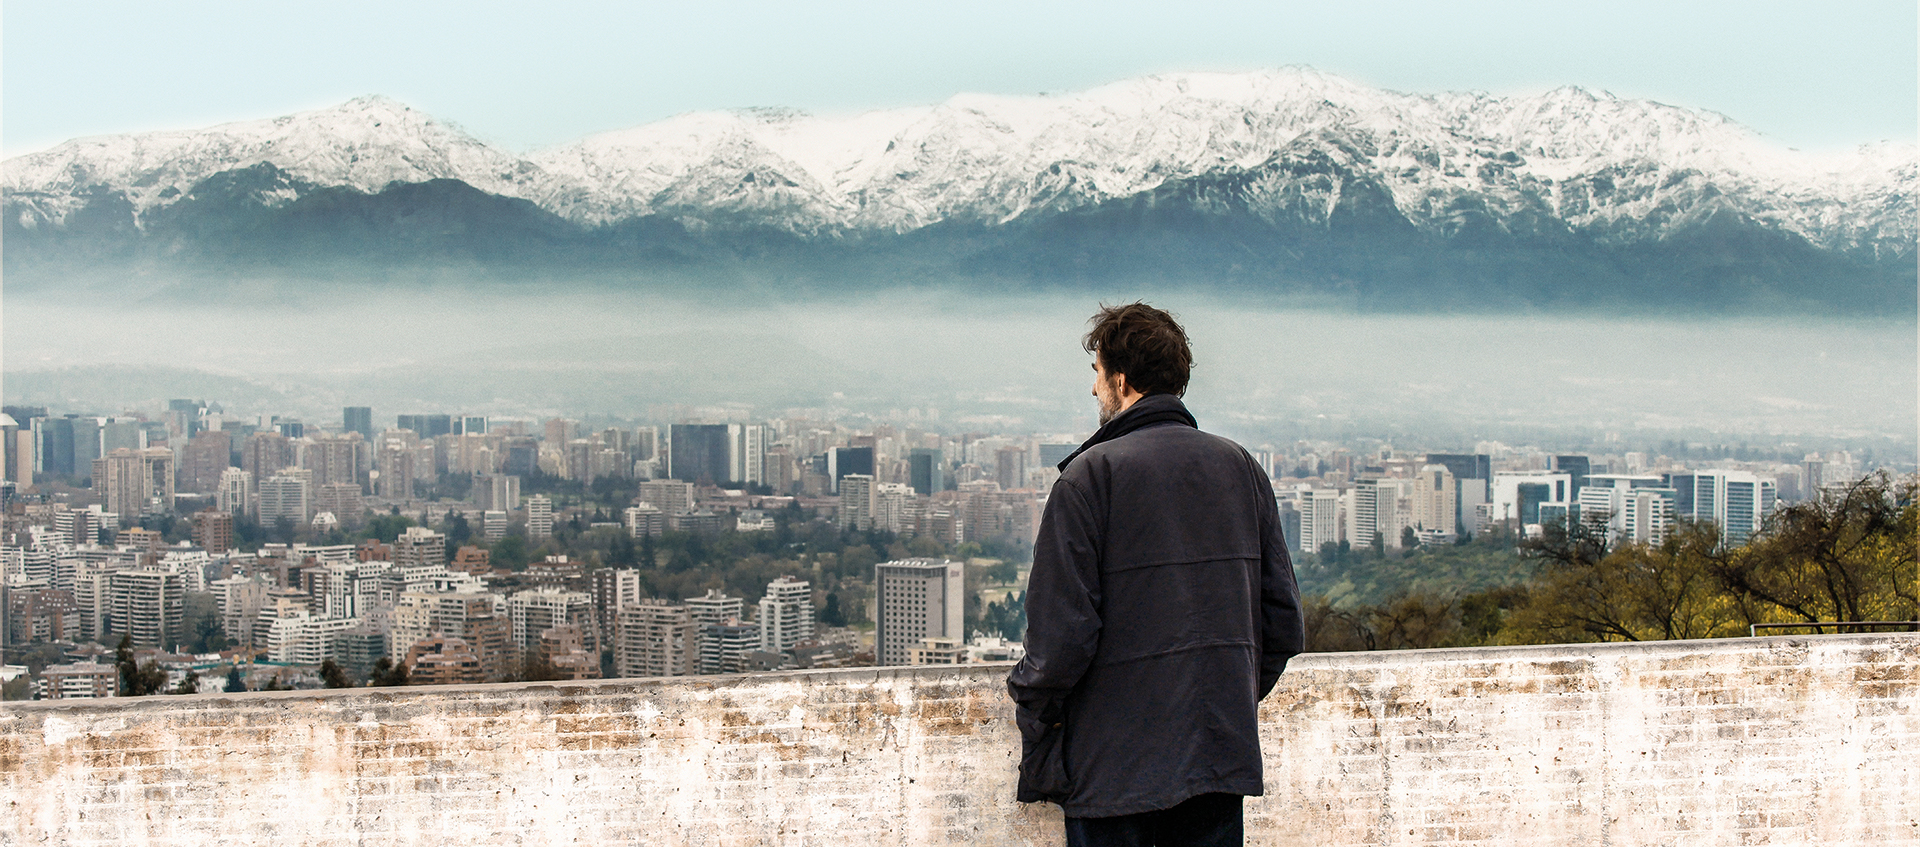 a man in a black coat overlooking a city with mountain in the background